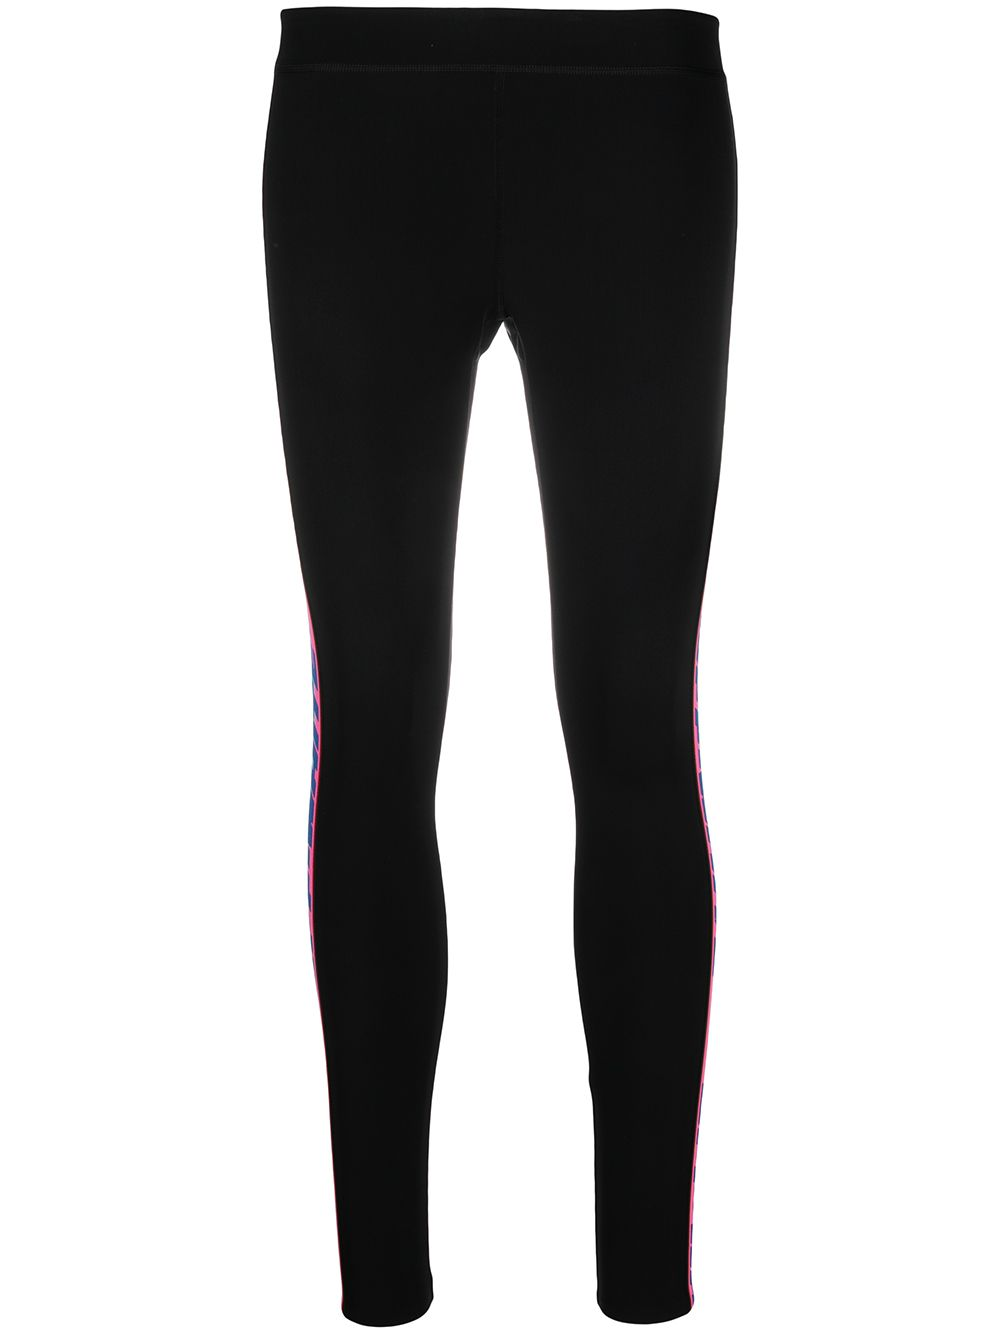 OFF-WHITE Women Athleisure Leggings Black - Maison De Fashion